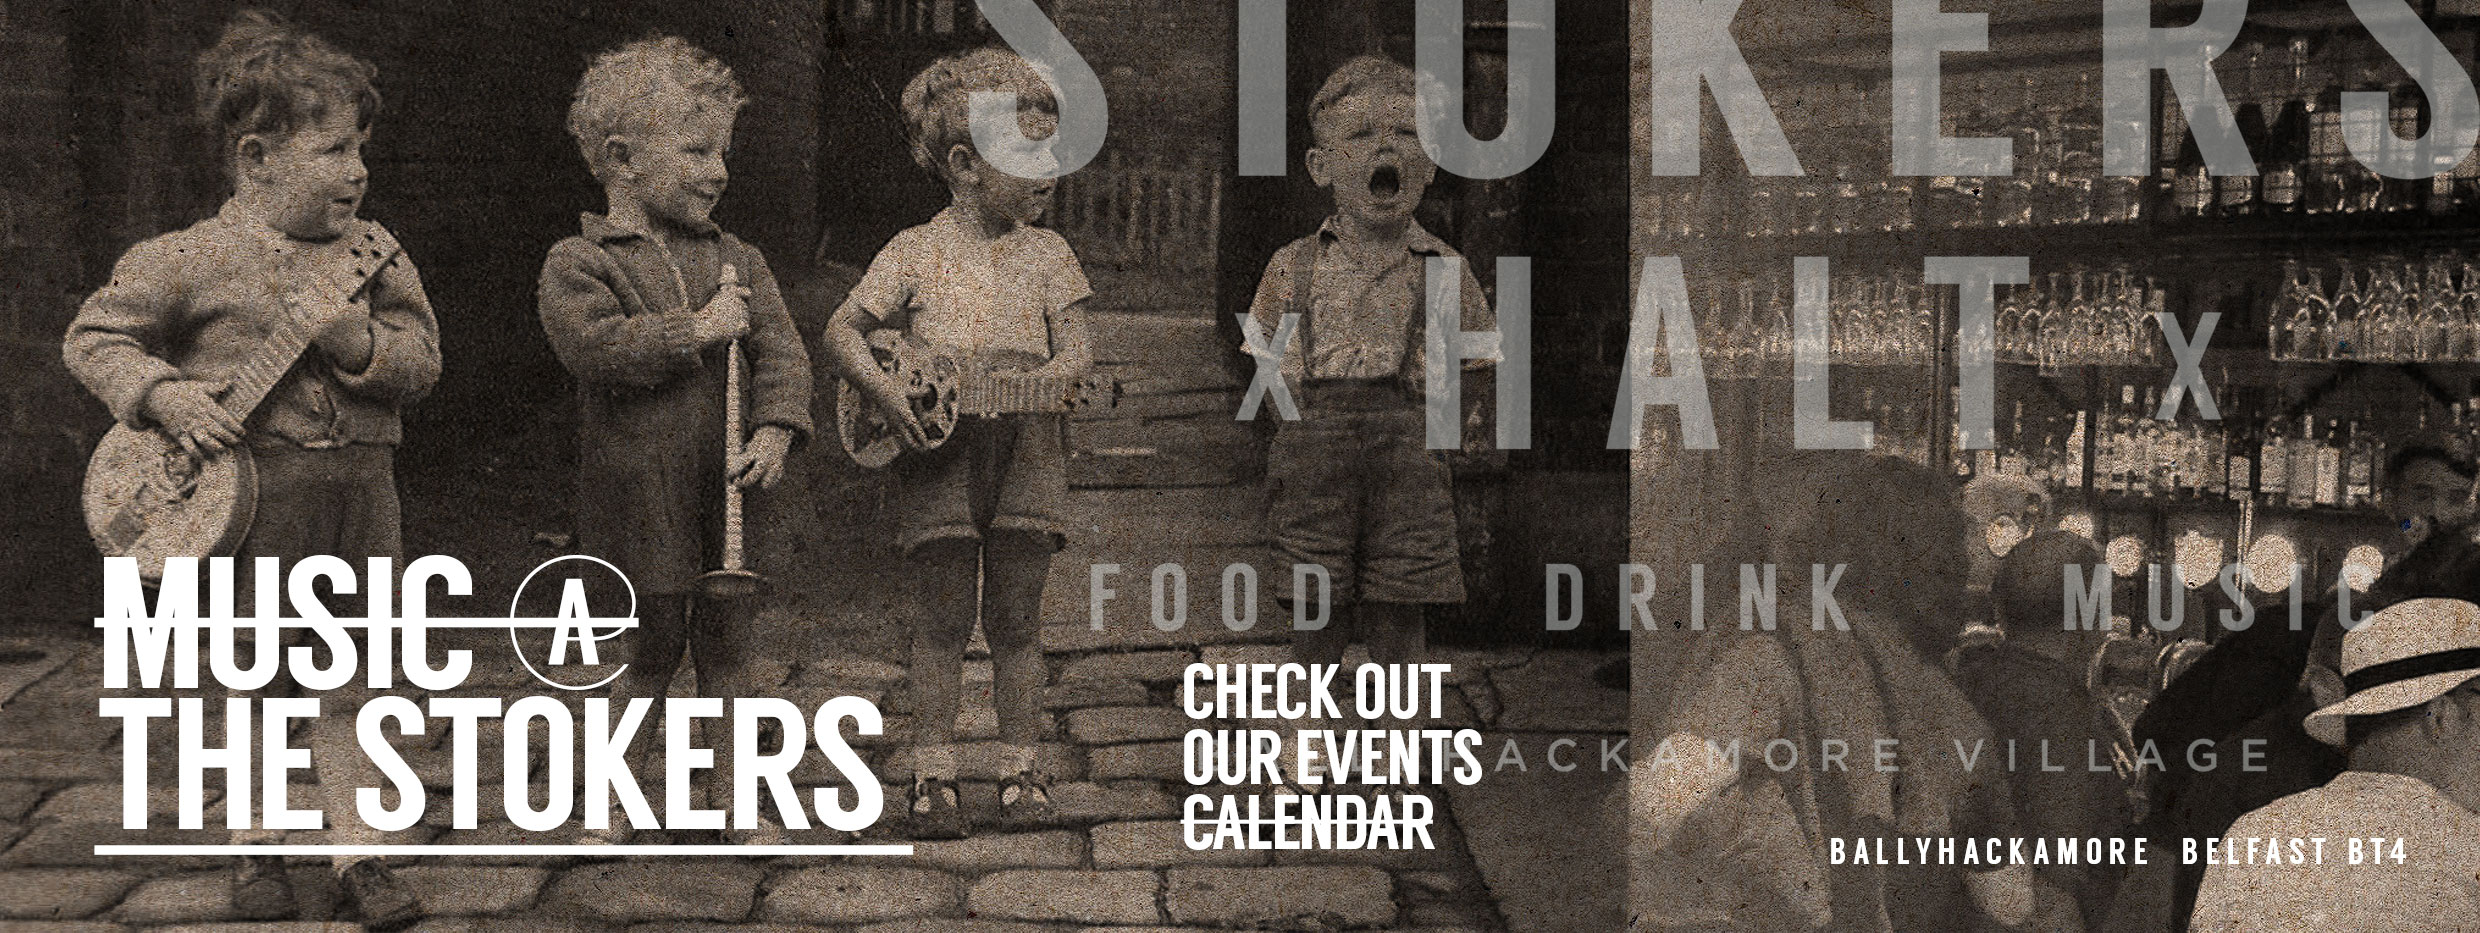 Music-Banner-The-Stokers-Halt